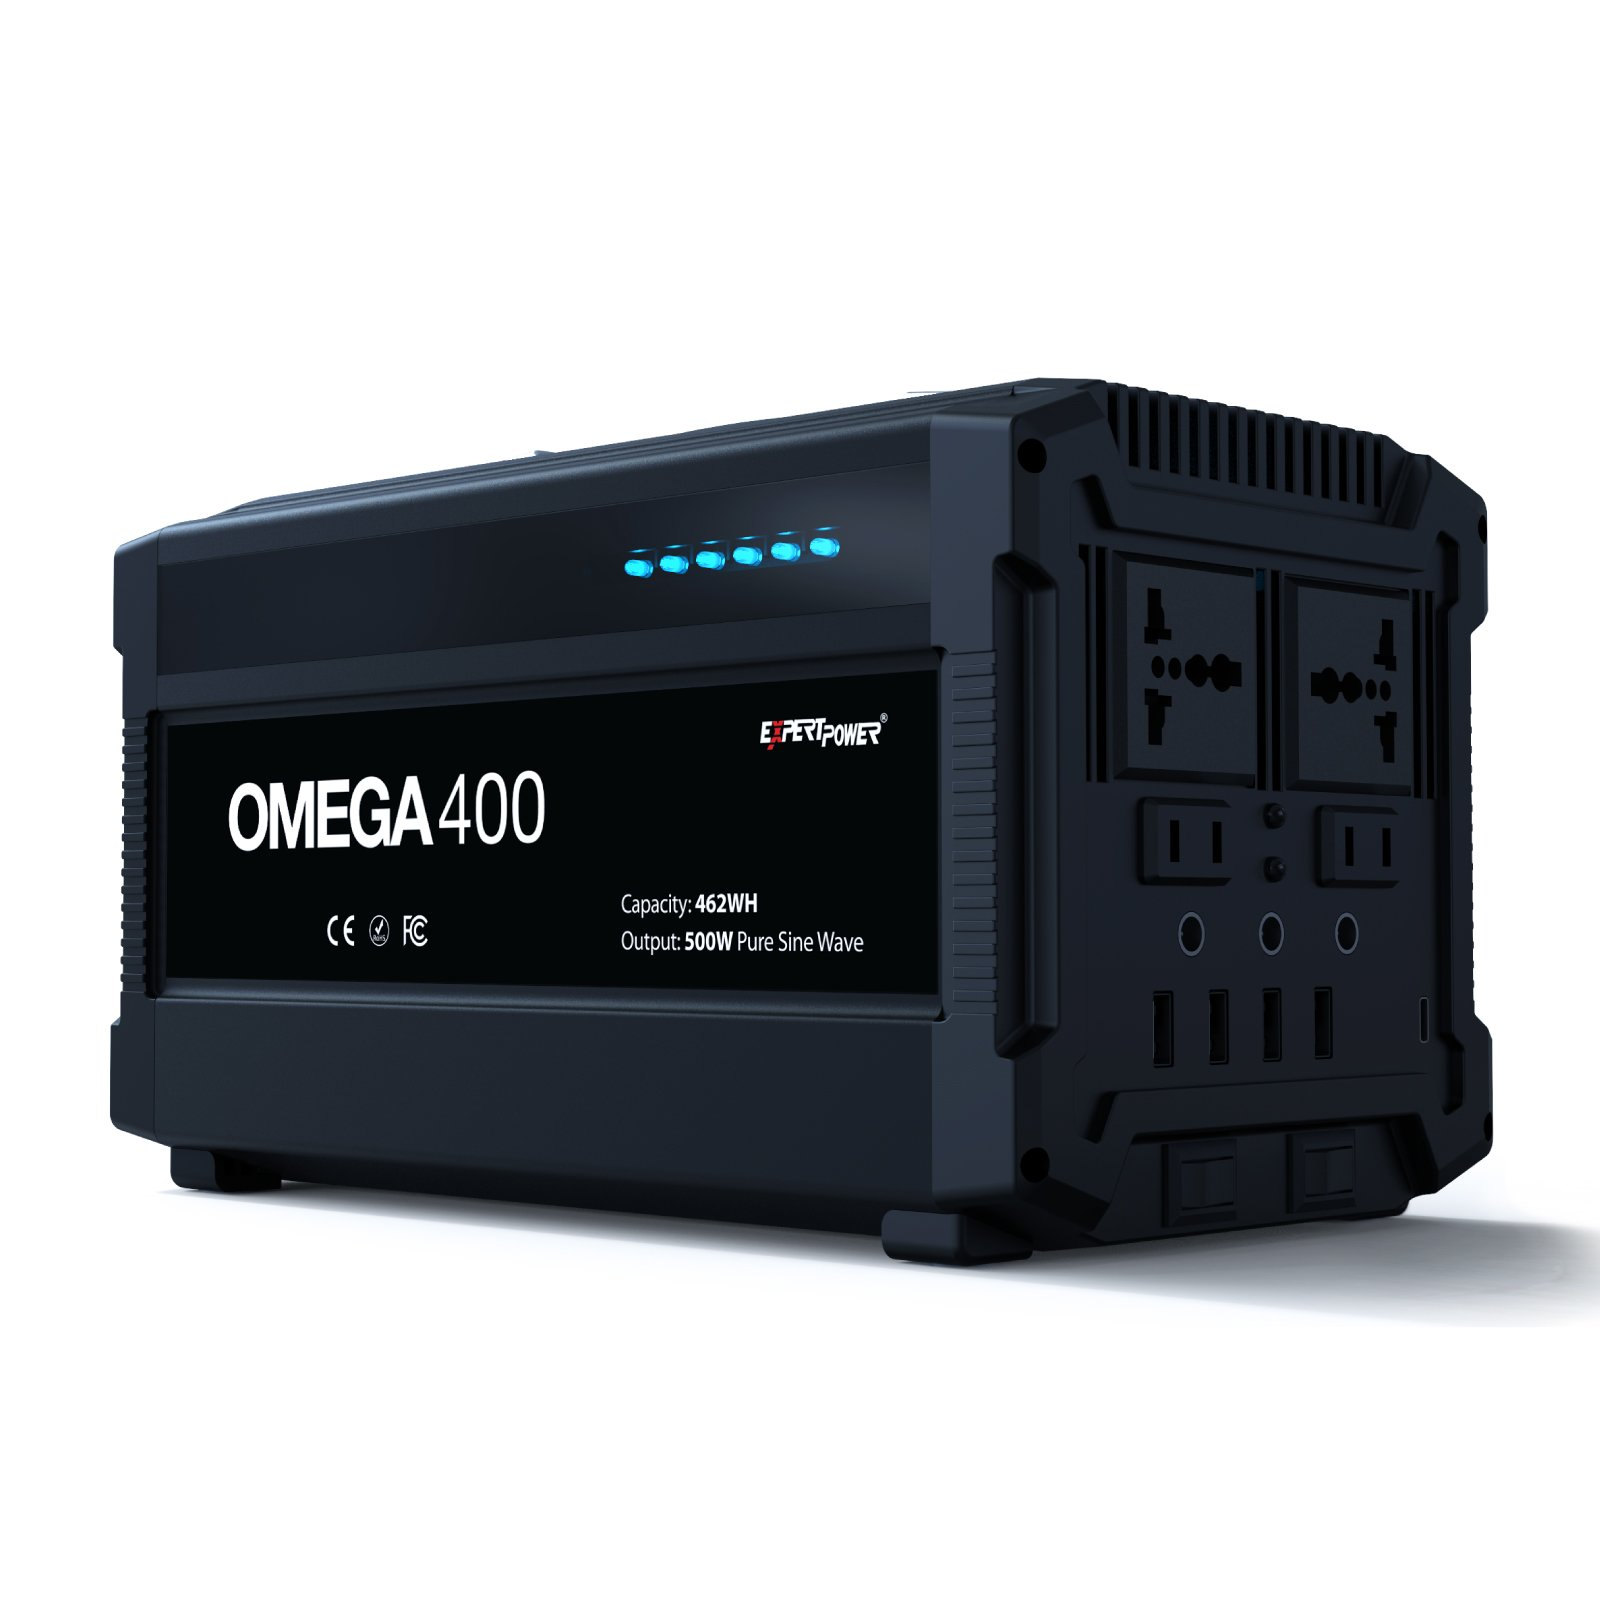 ExpertPower Omega 400 Portable Generator Lithium-ion 42AH 462WH Uninterruptible Power Supply with 500W PURE SINE WAVE for Outdoor and Indoor Use